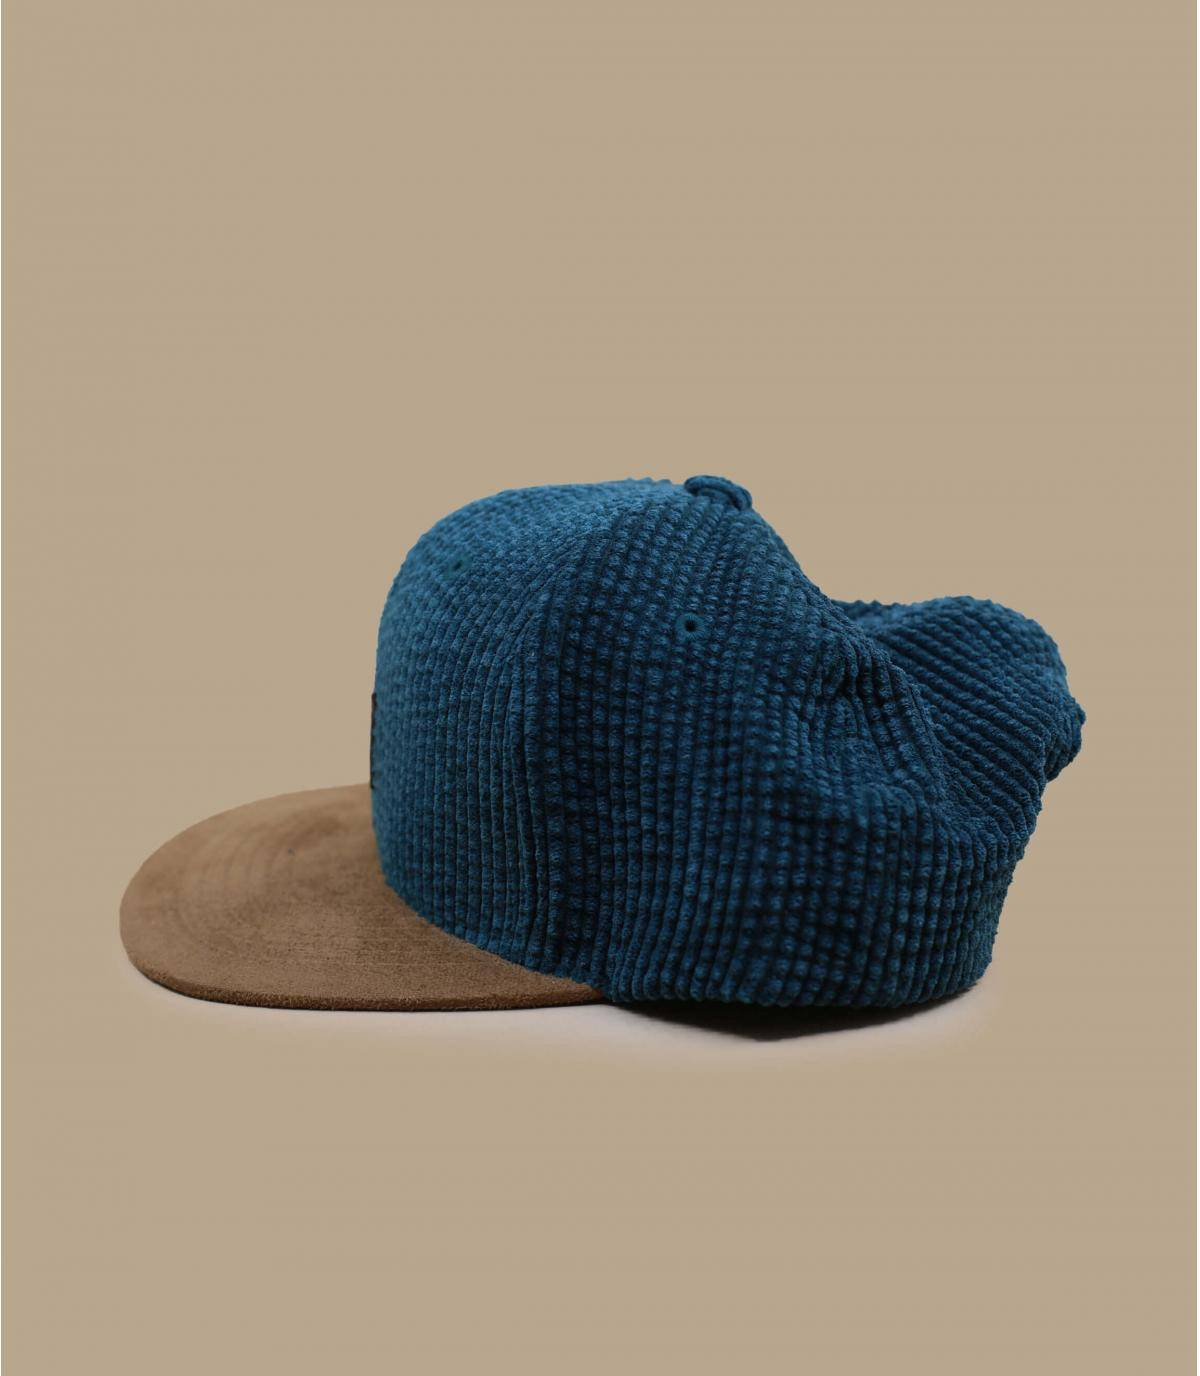 Details Suede Cap Cord forest green - afbeeling 3